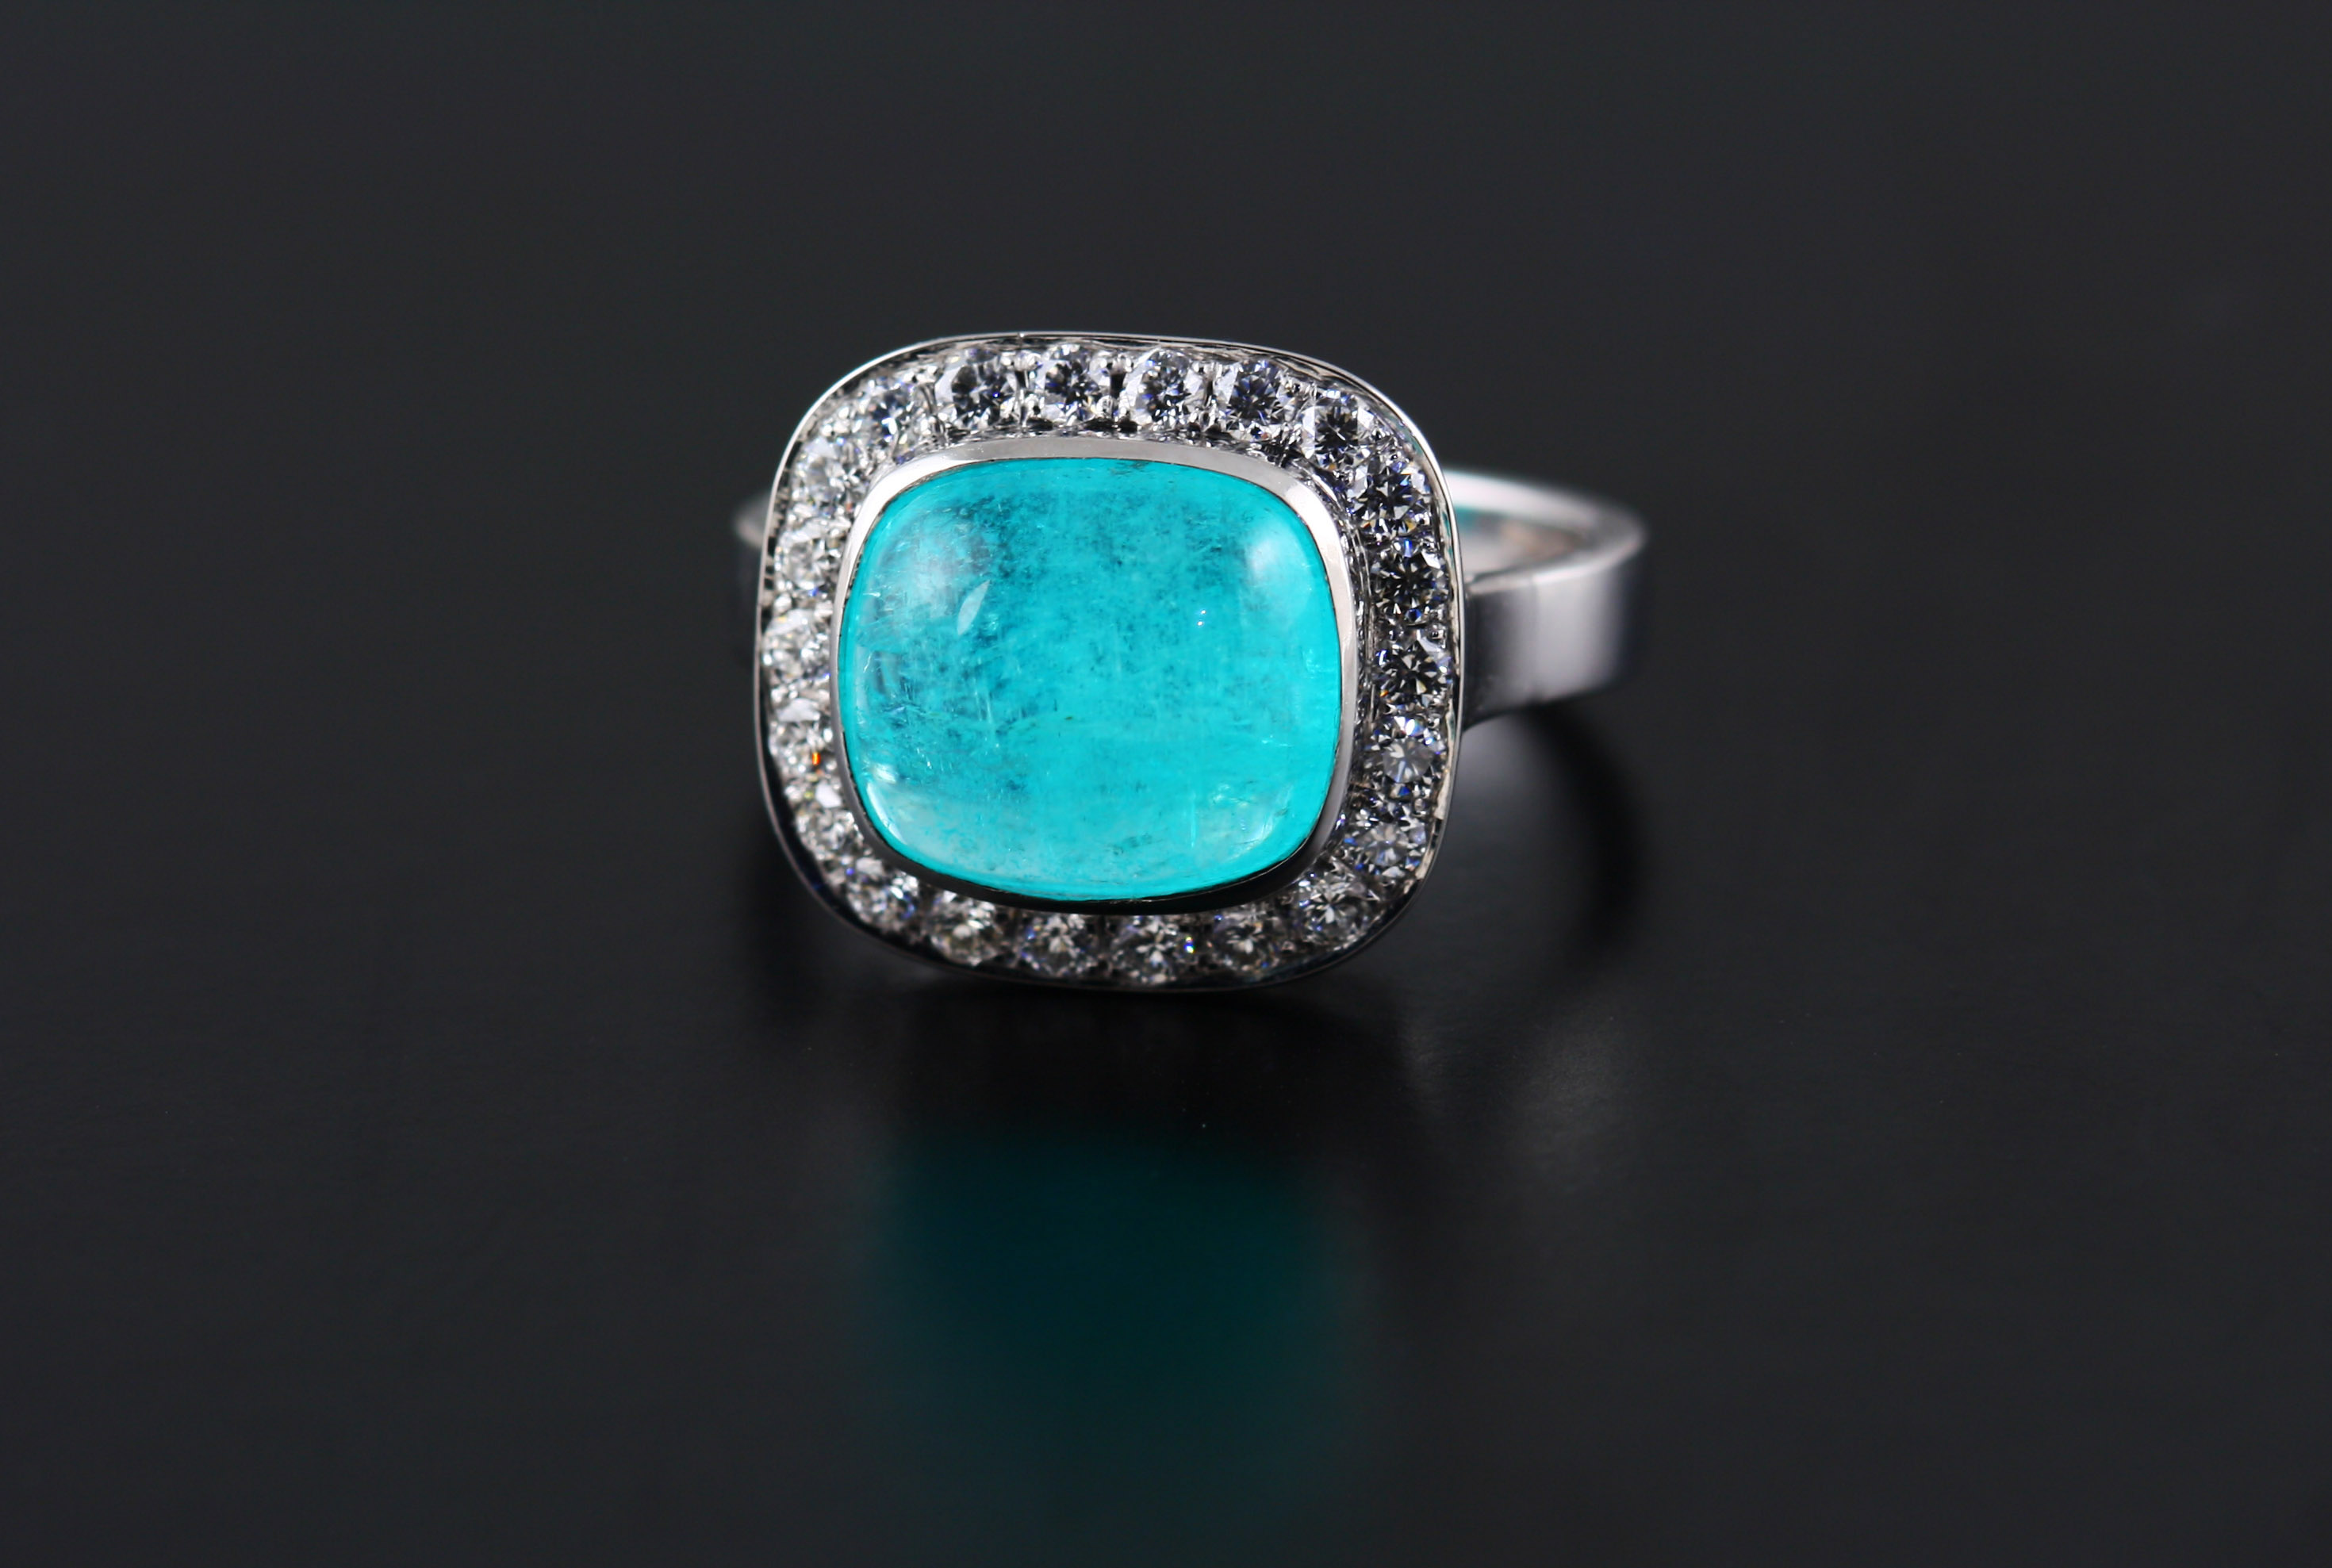 18K WHITE GOLD, PARAIBA TOURMALINE AND DIAMOND RING